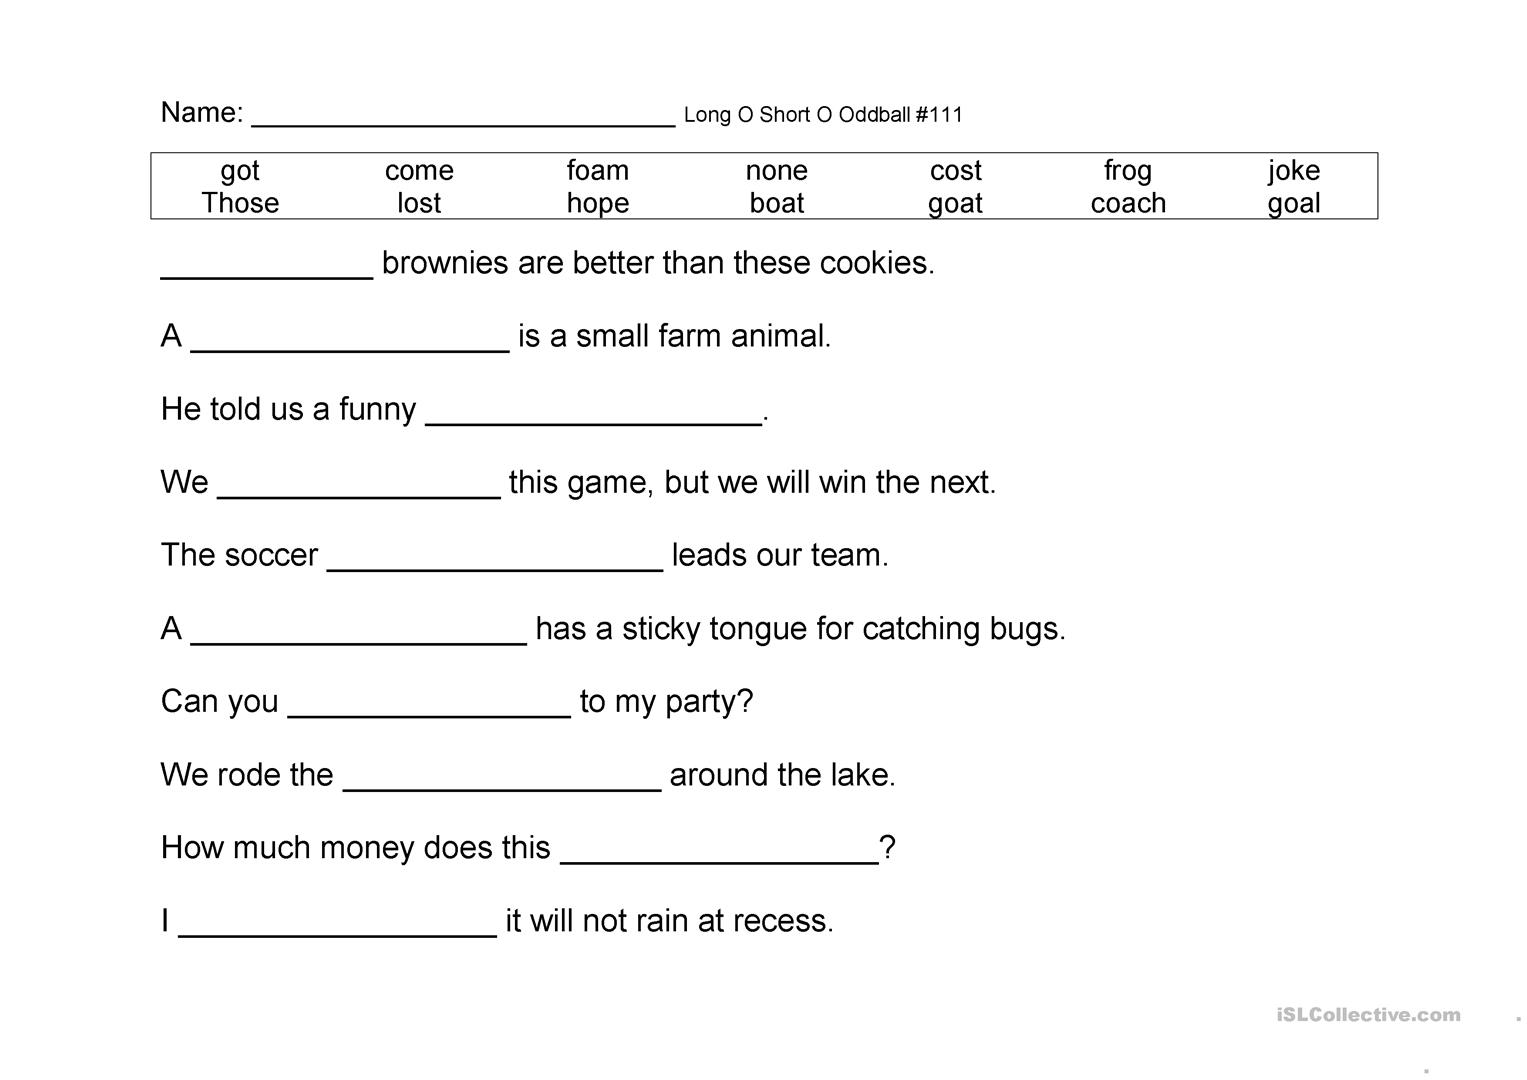 Long O Short O Oddball Sentences Worksheet